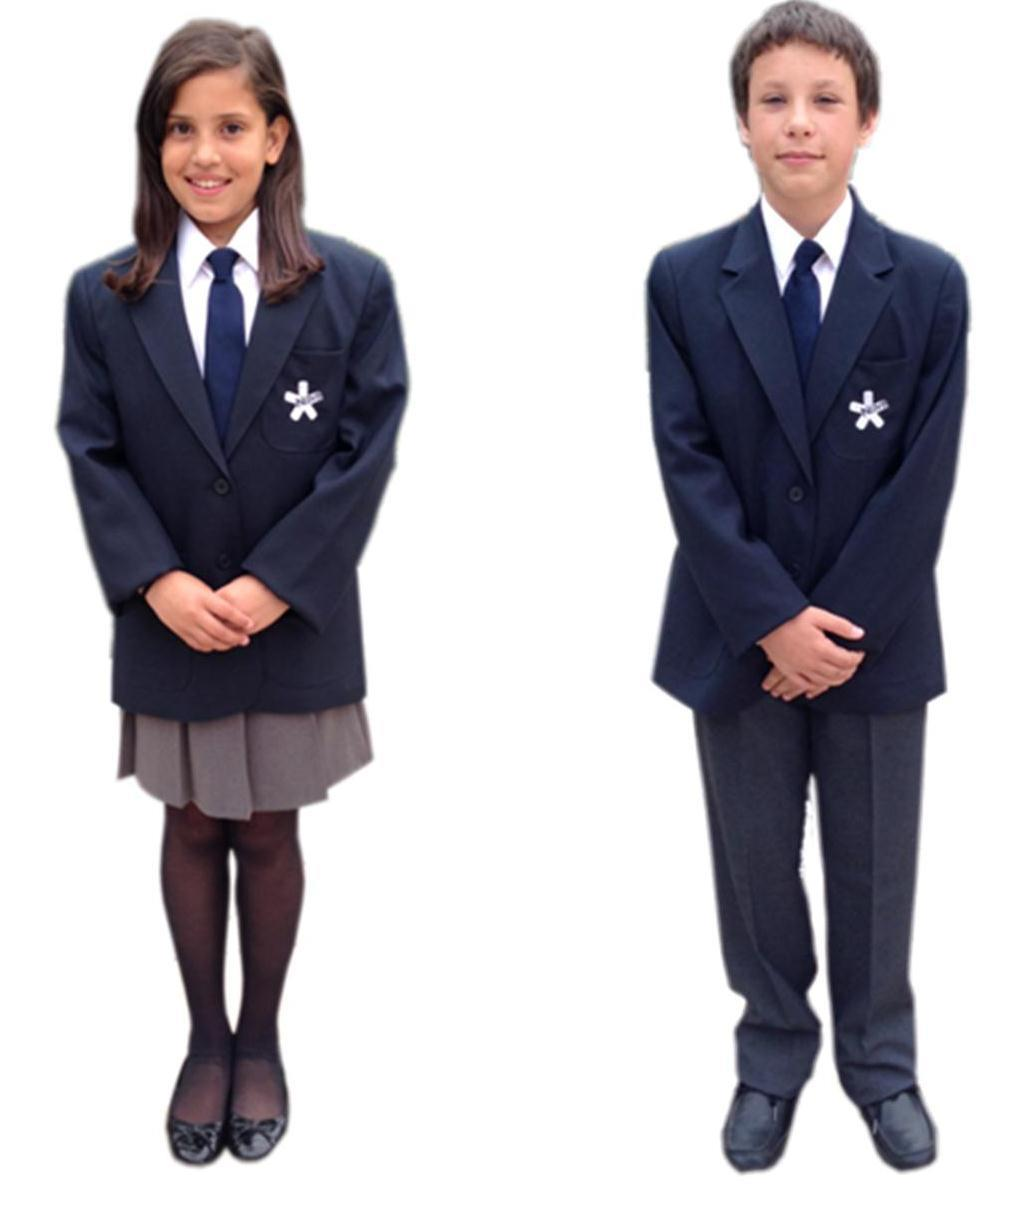 From September 2015, uniform for all students is: